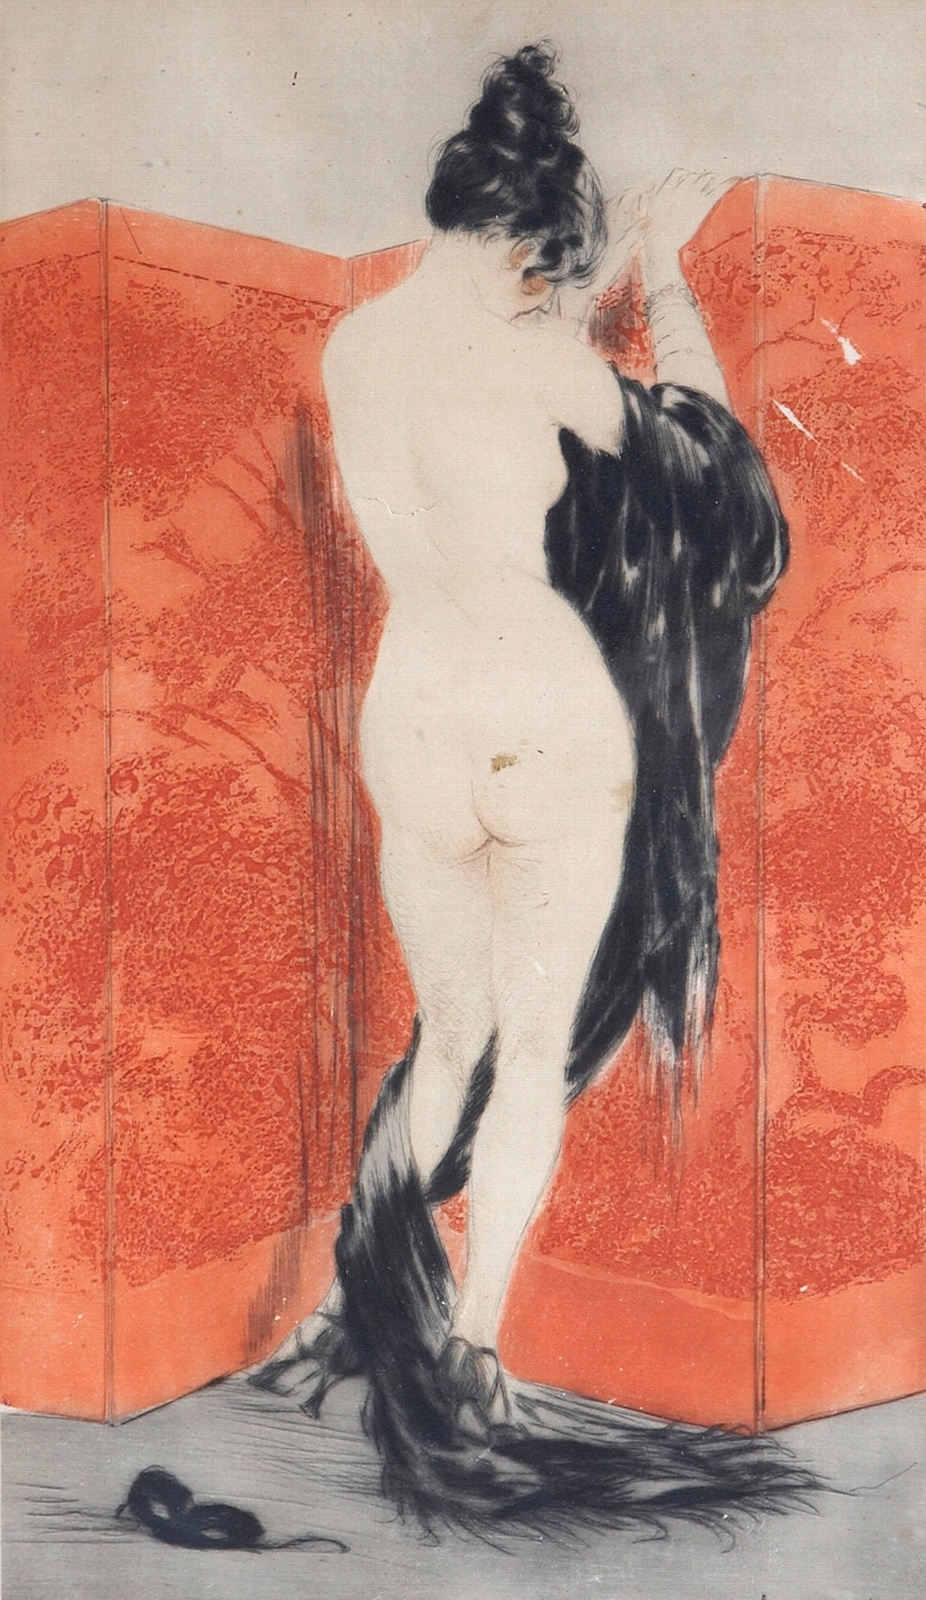 Icarus Louis France 1888 - 1950. Red screen. 1922